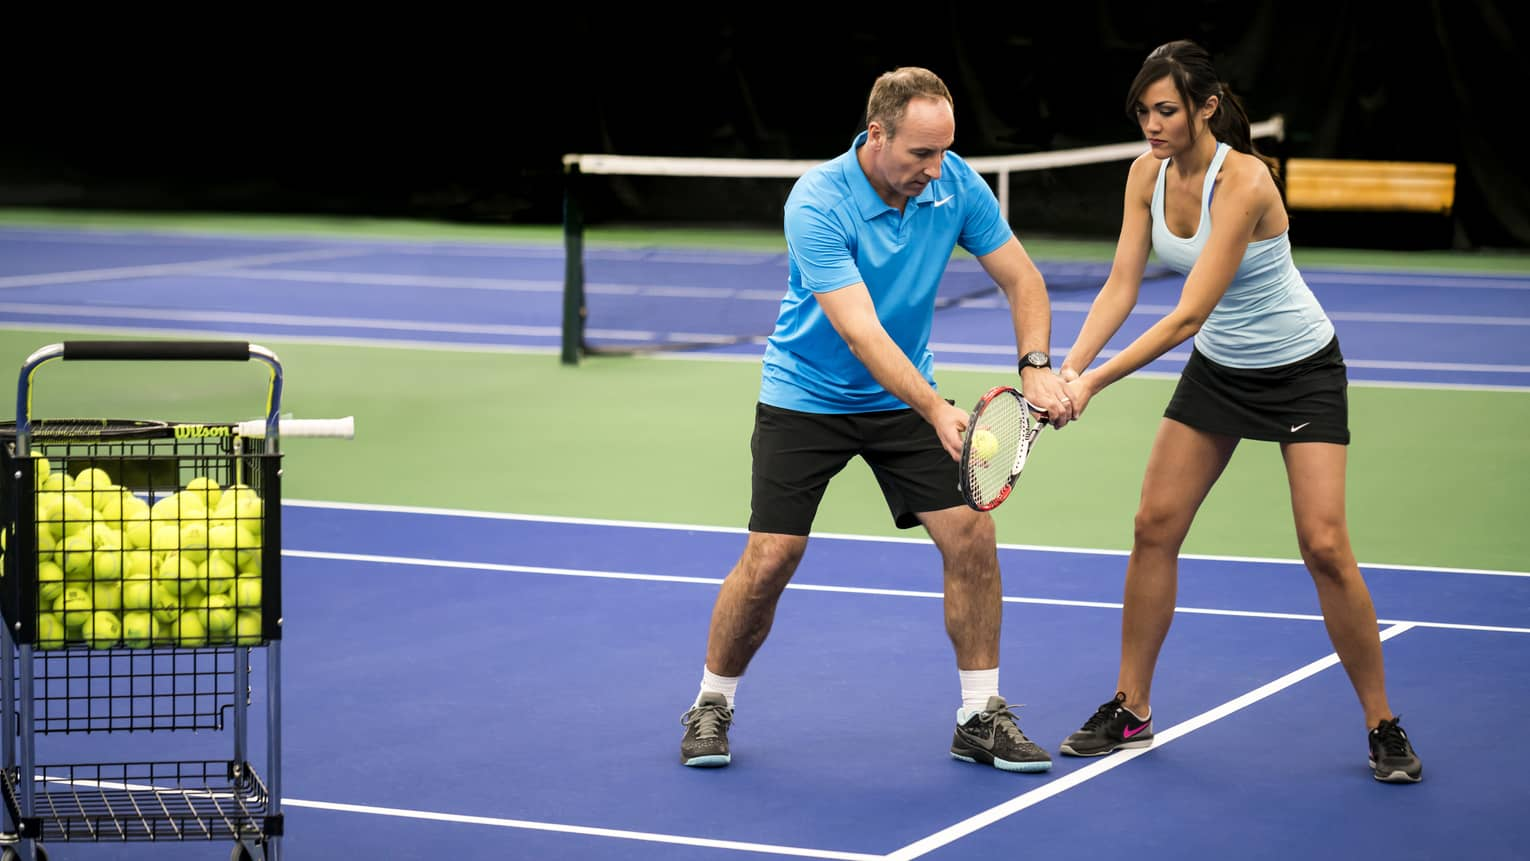 Tennis pro helps woman position racket on blue court near basket with green tennis balls